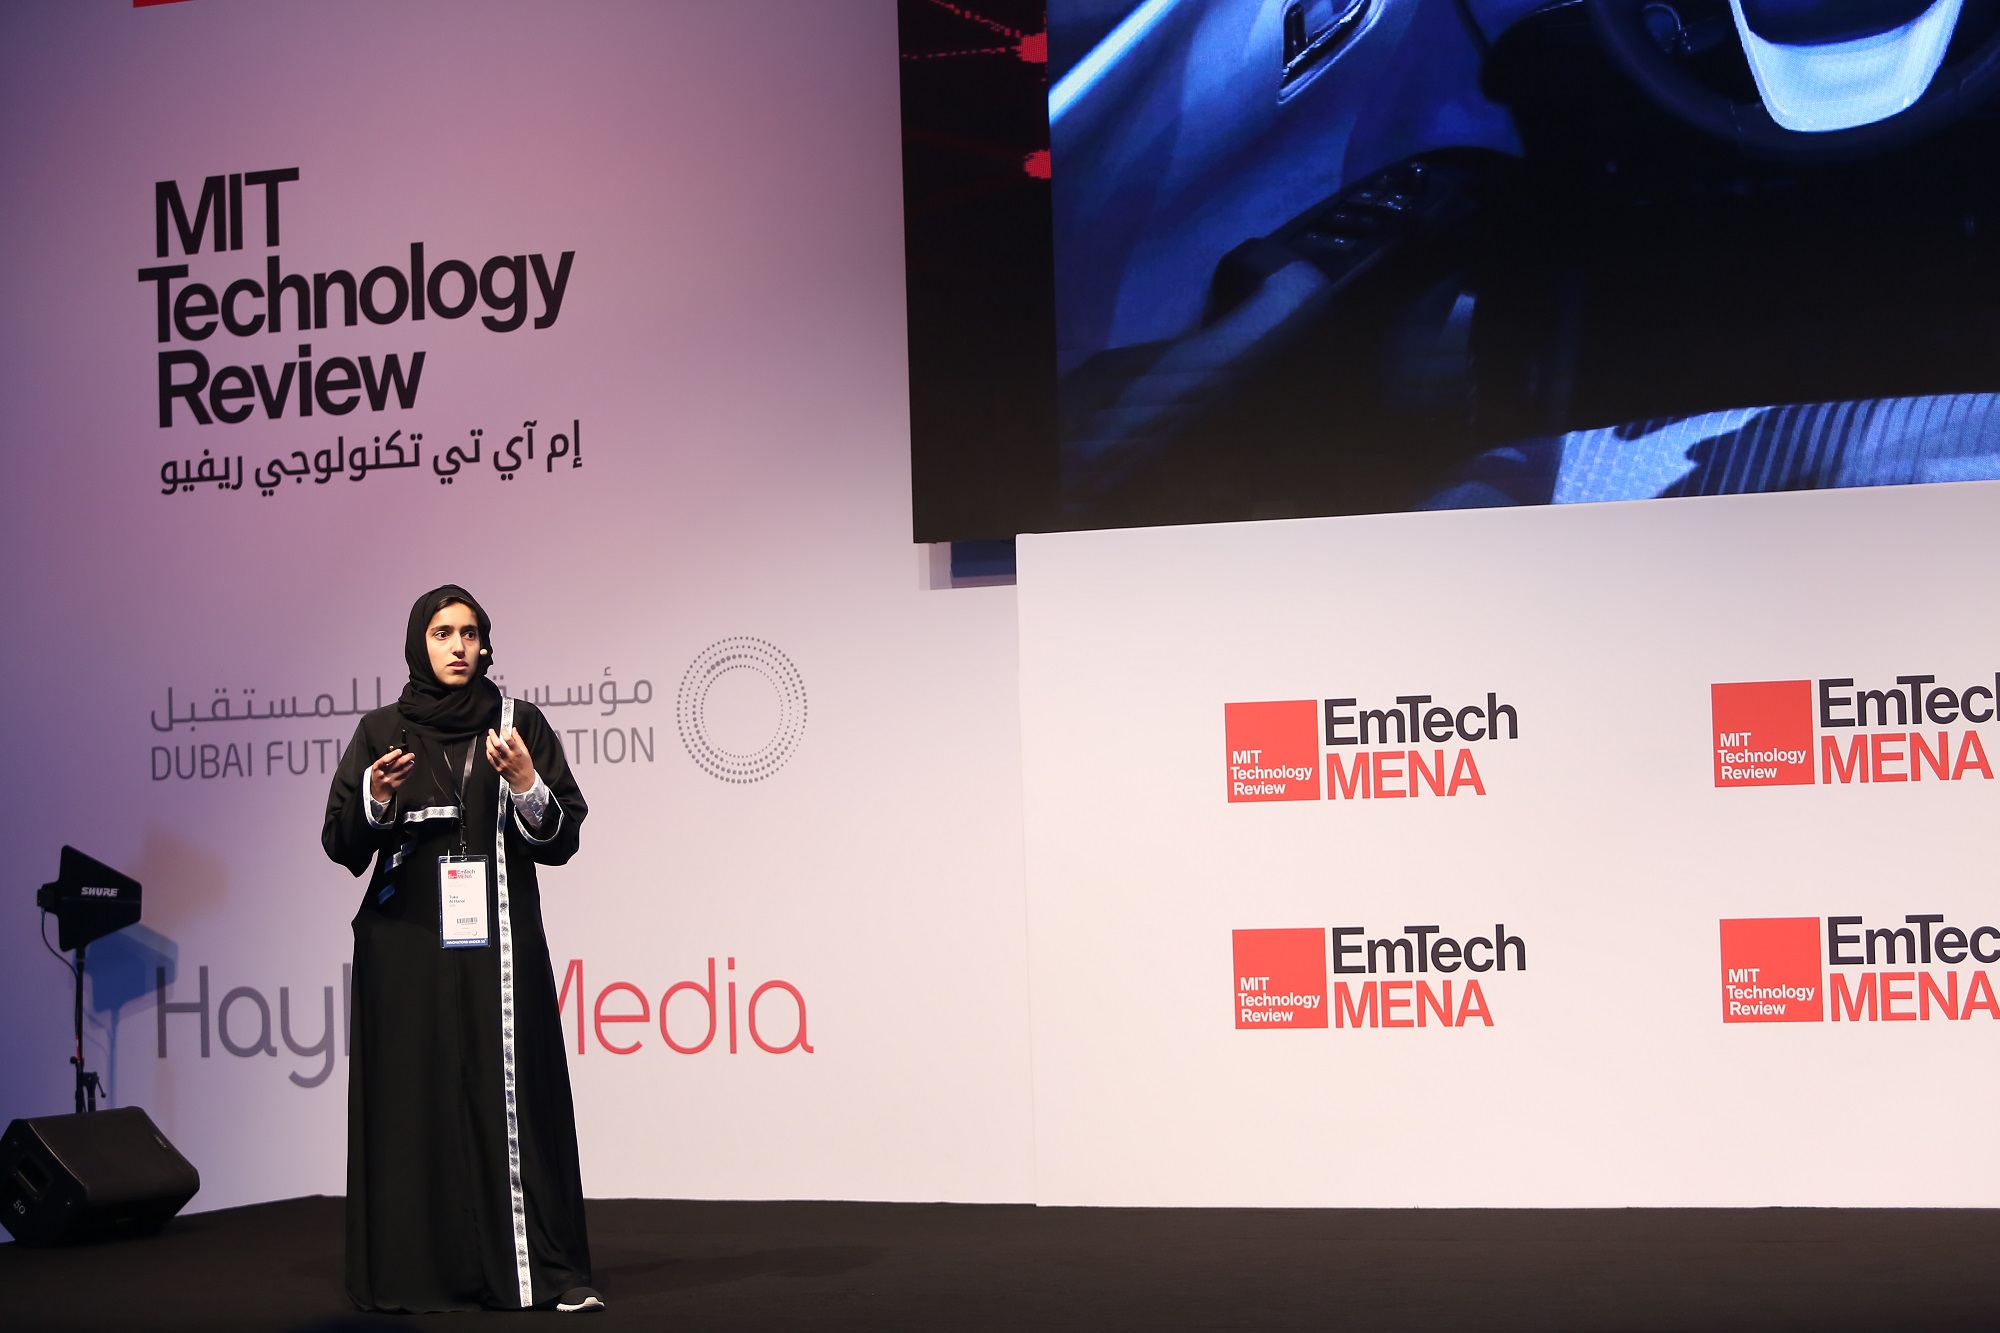 dubai future foundation awards 10 'innovators under 35'